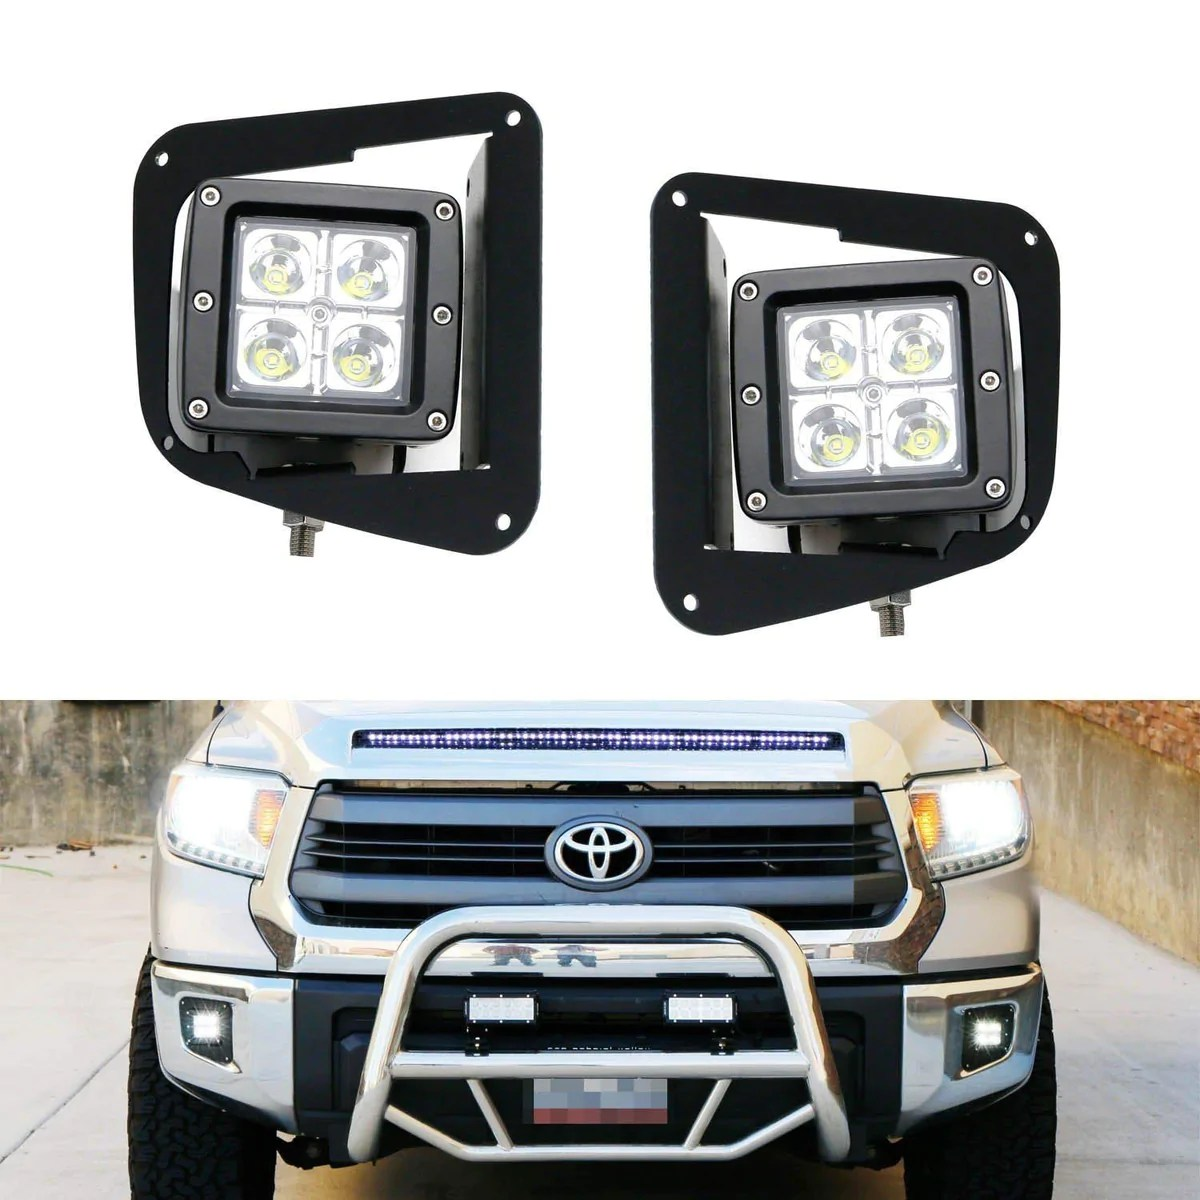 medium resolution of led pod light fog lamp kit for 2014 up toyota tundra includes 2 20w high power cree led cubes foglight bezel covers mounting brackets wiring adapter